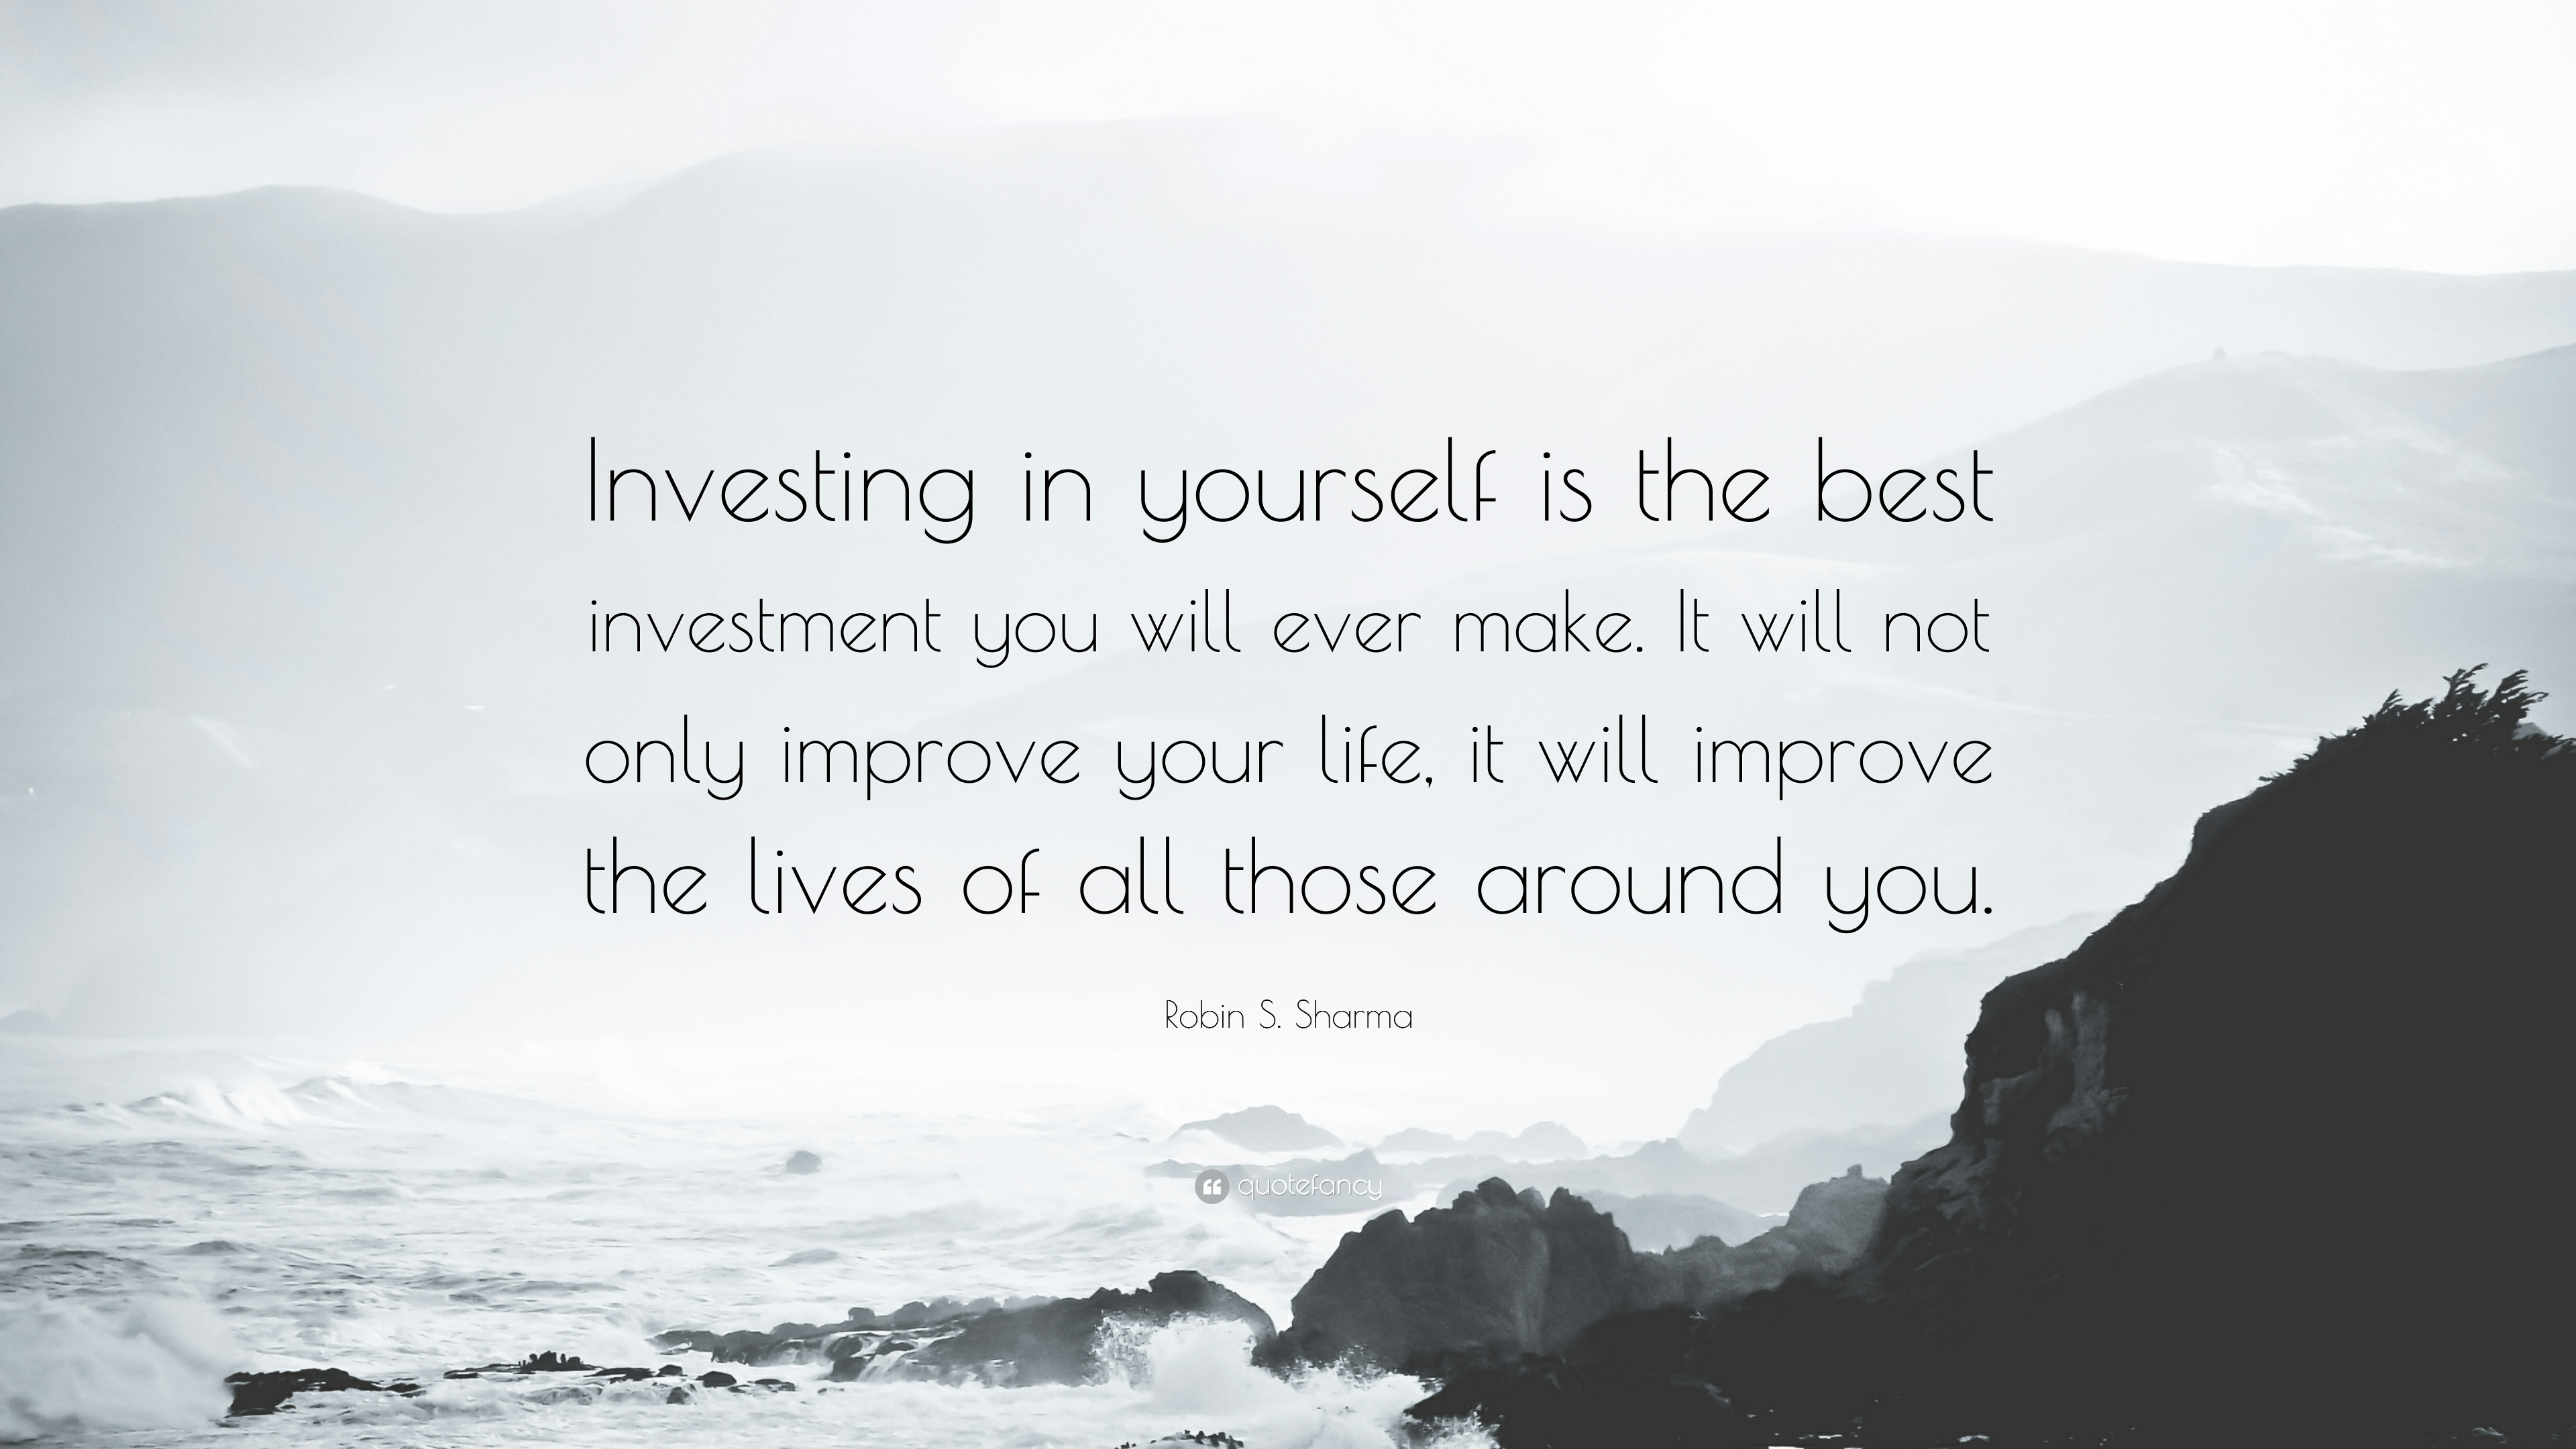 Robin s sharma quote investing in yourself is the best investment robin s sharma quote investing in yourself is the best investment you will solutioingenieria